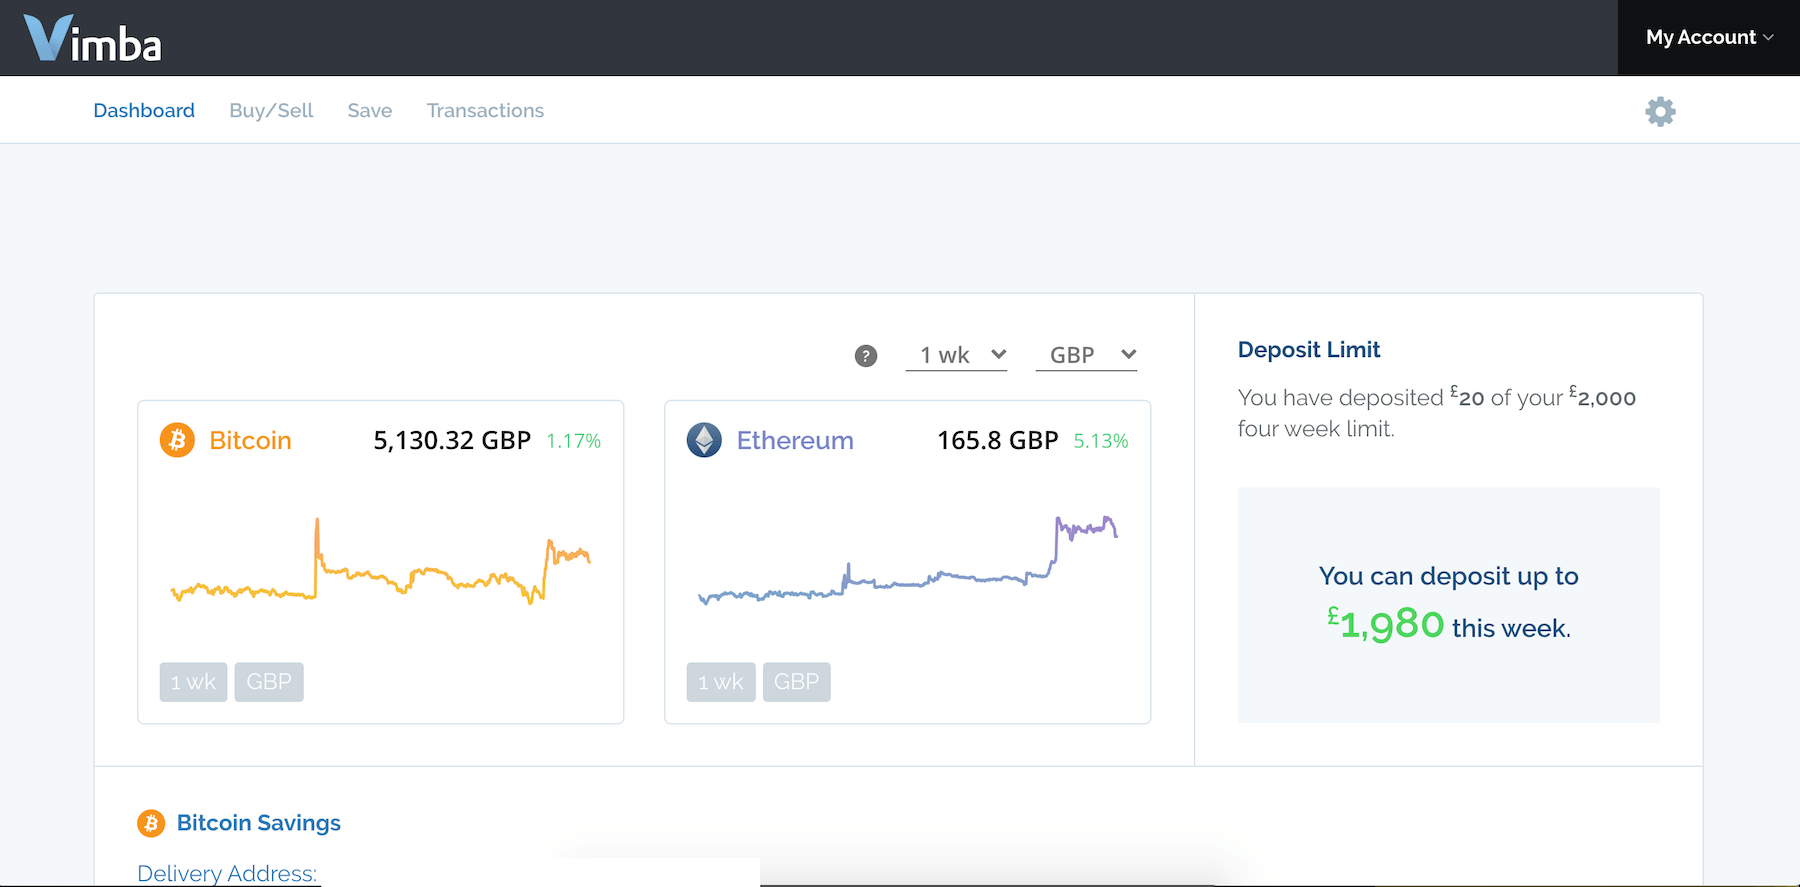 Vimba.co website dashboard